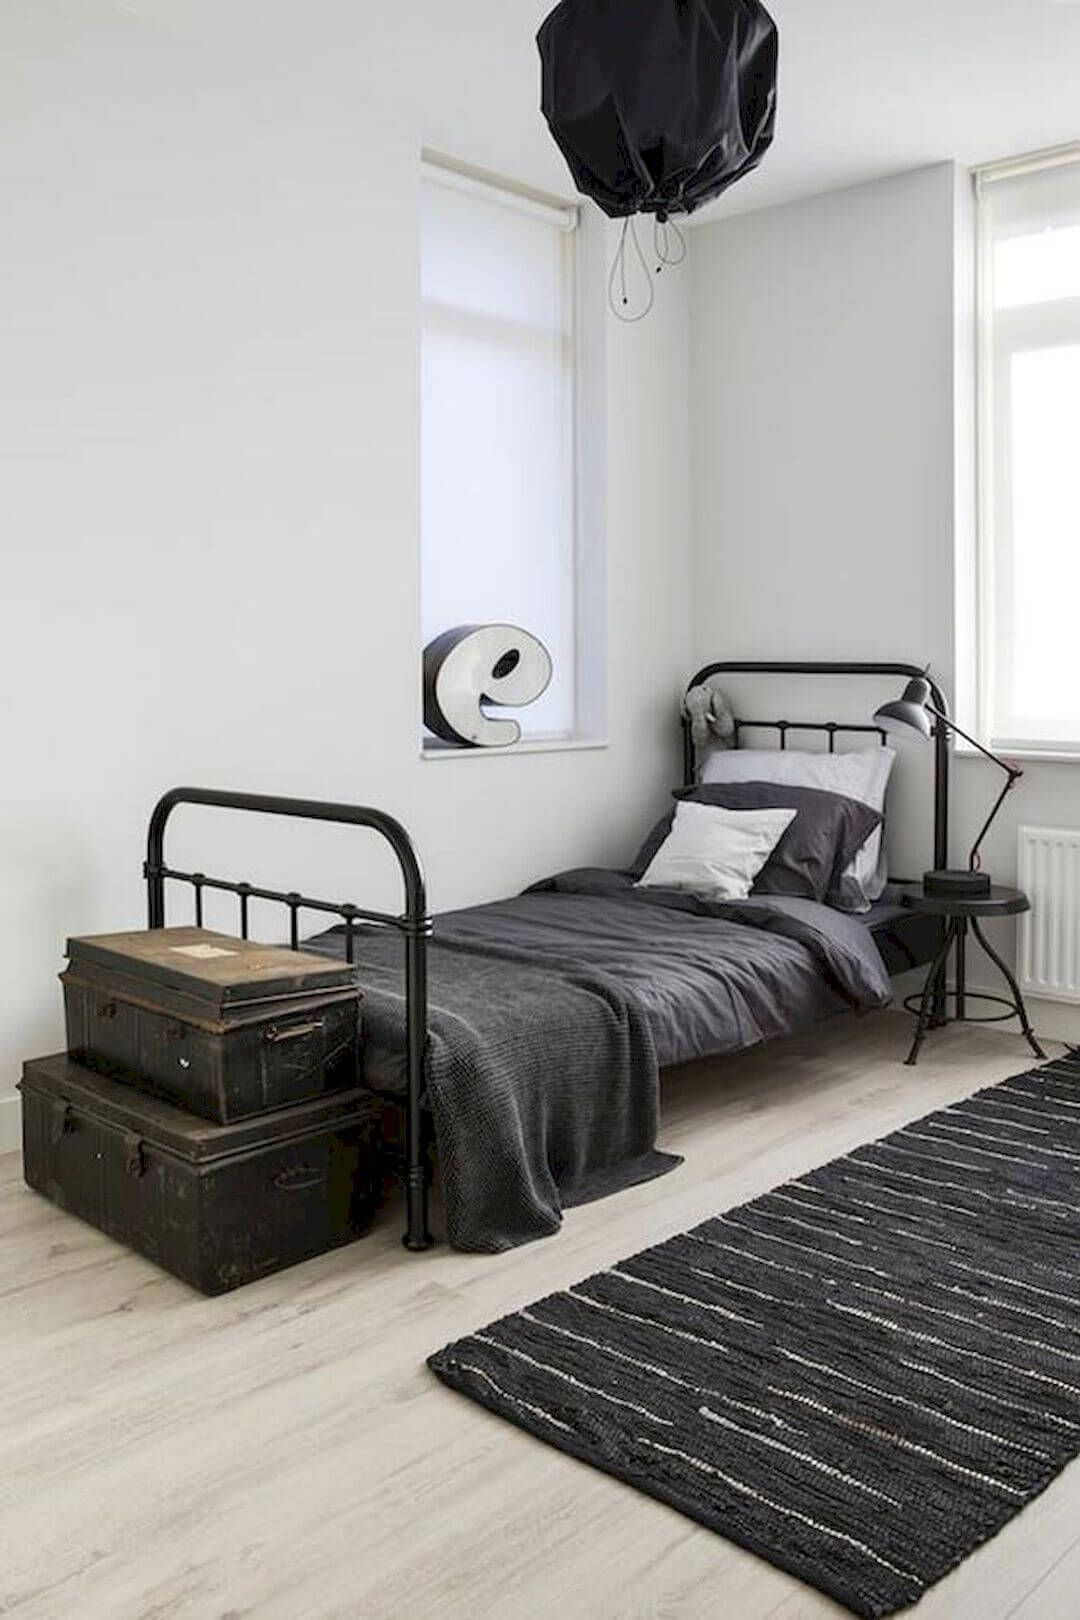 Some Of The Best Single Bed Designs To Have In Your Home